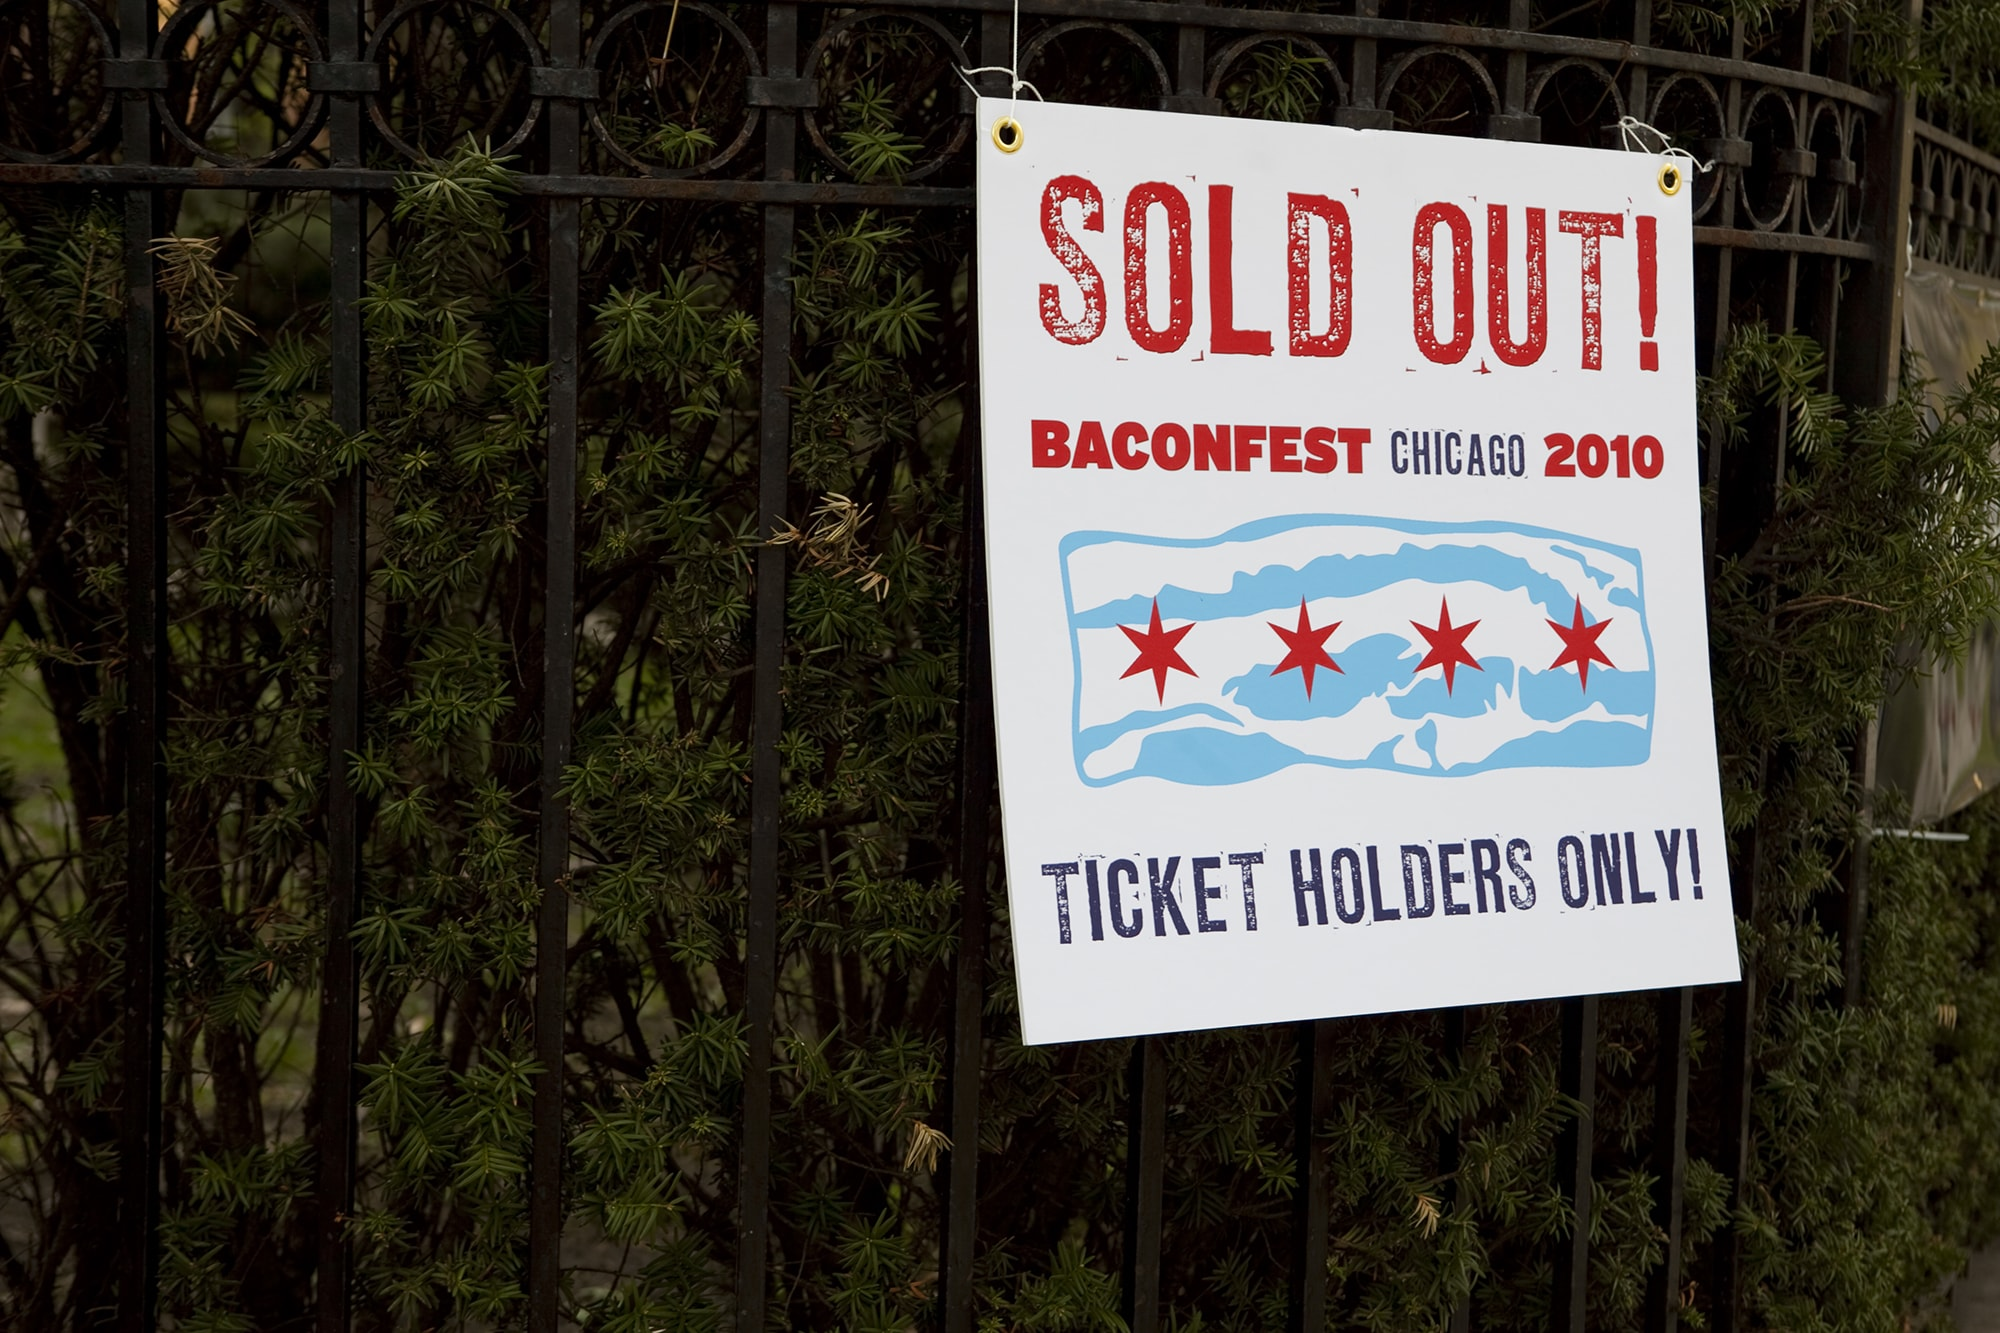 Sold out Baconfest Chicago - a bacon festival